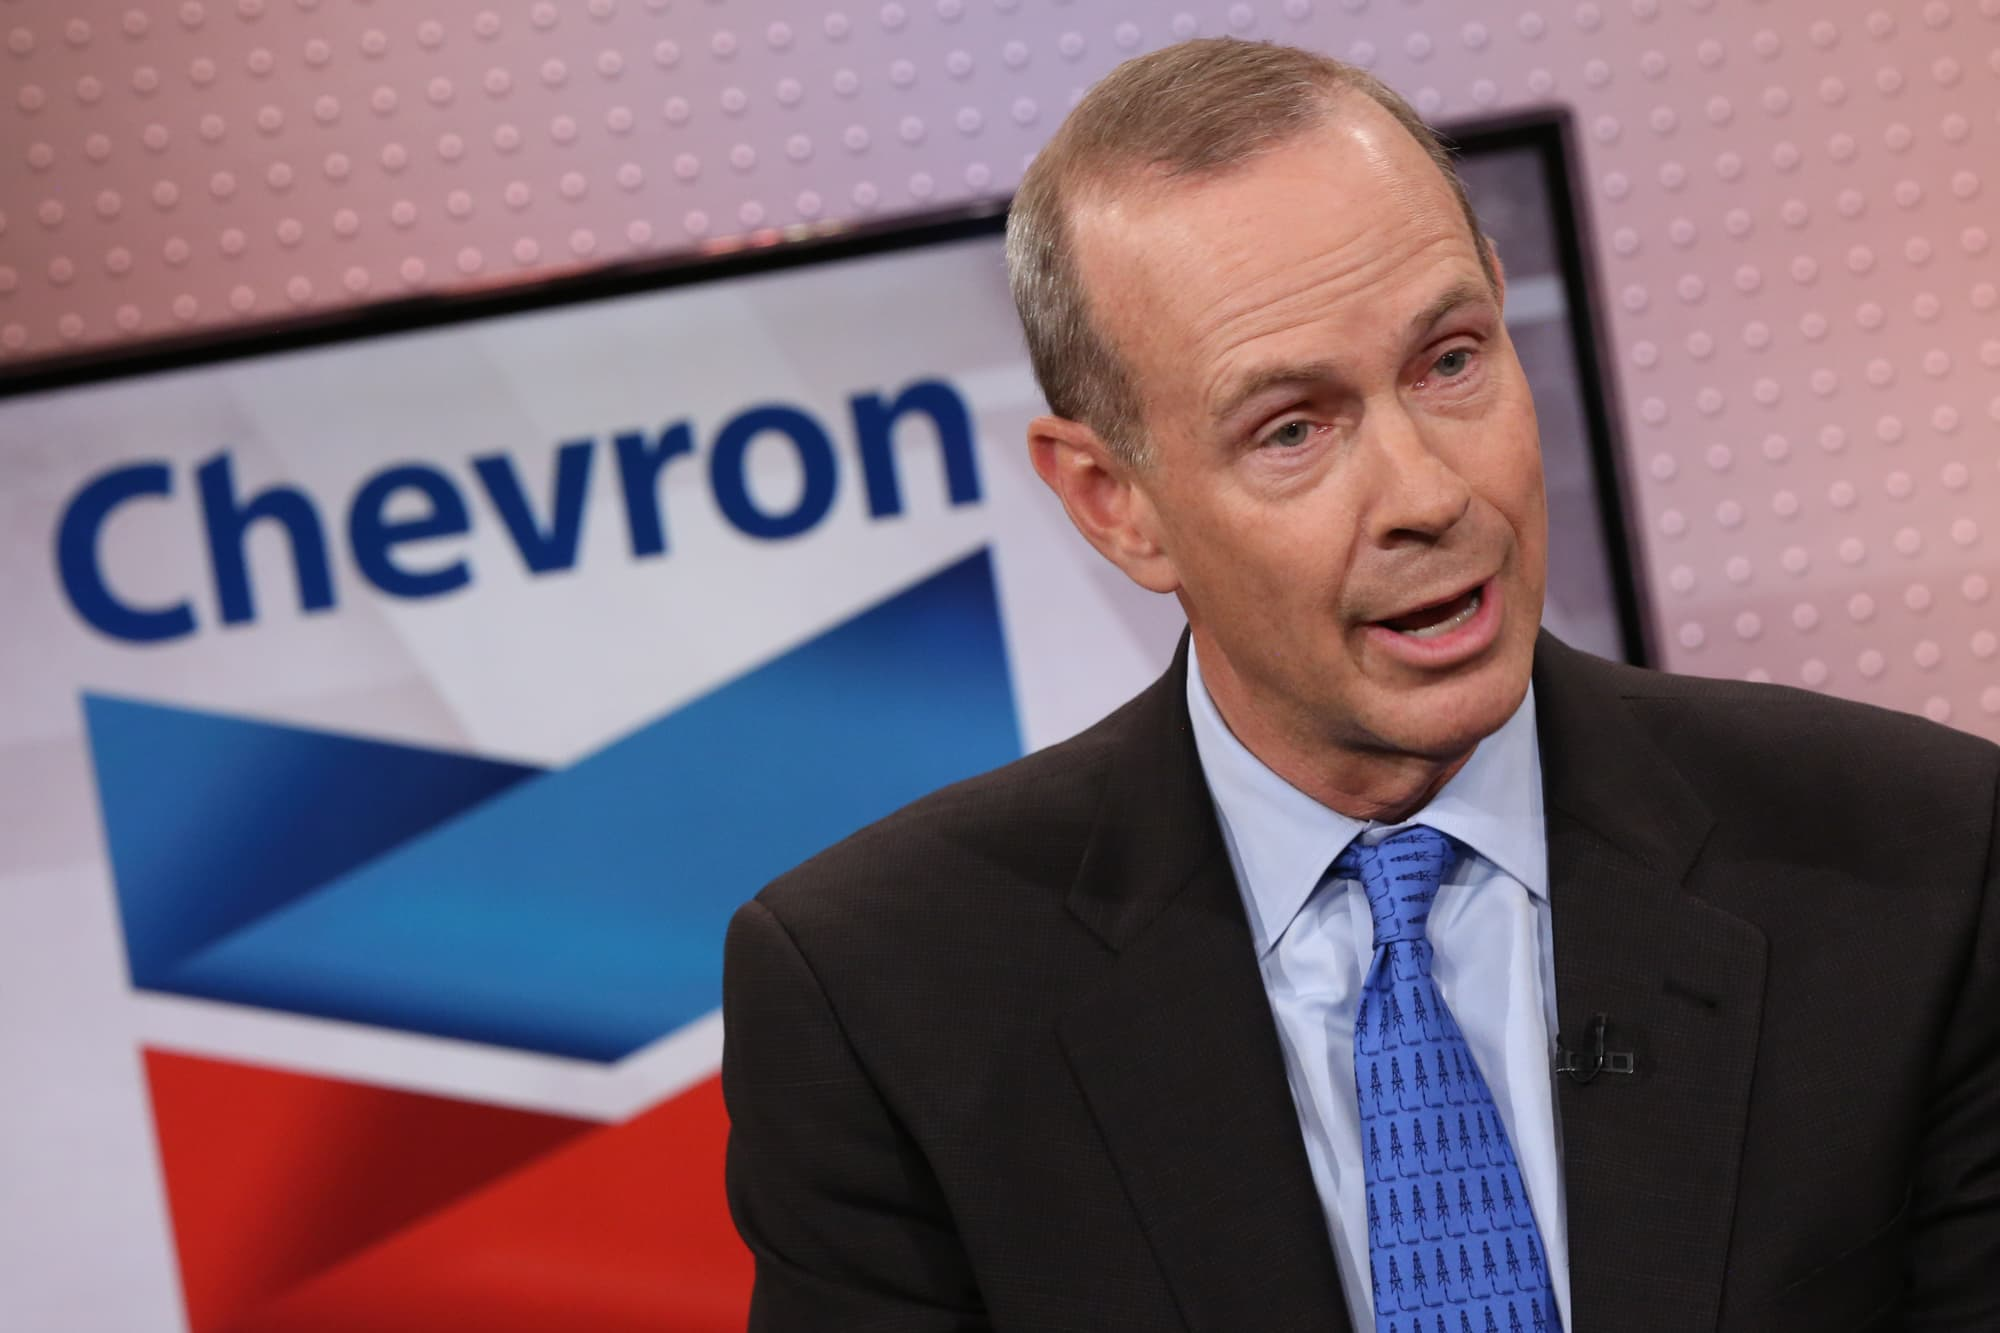 Here are the biggest analyst calls of the day: Chevron, Deckers, NXP Semiconductors & more